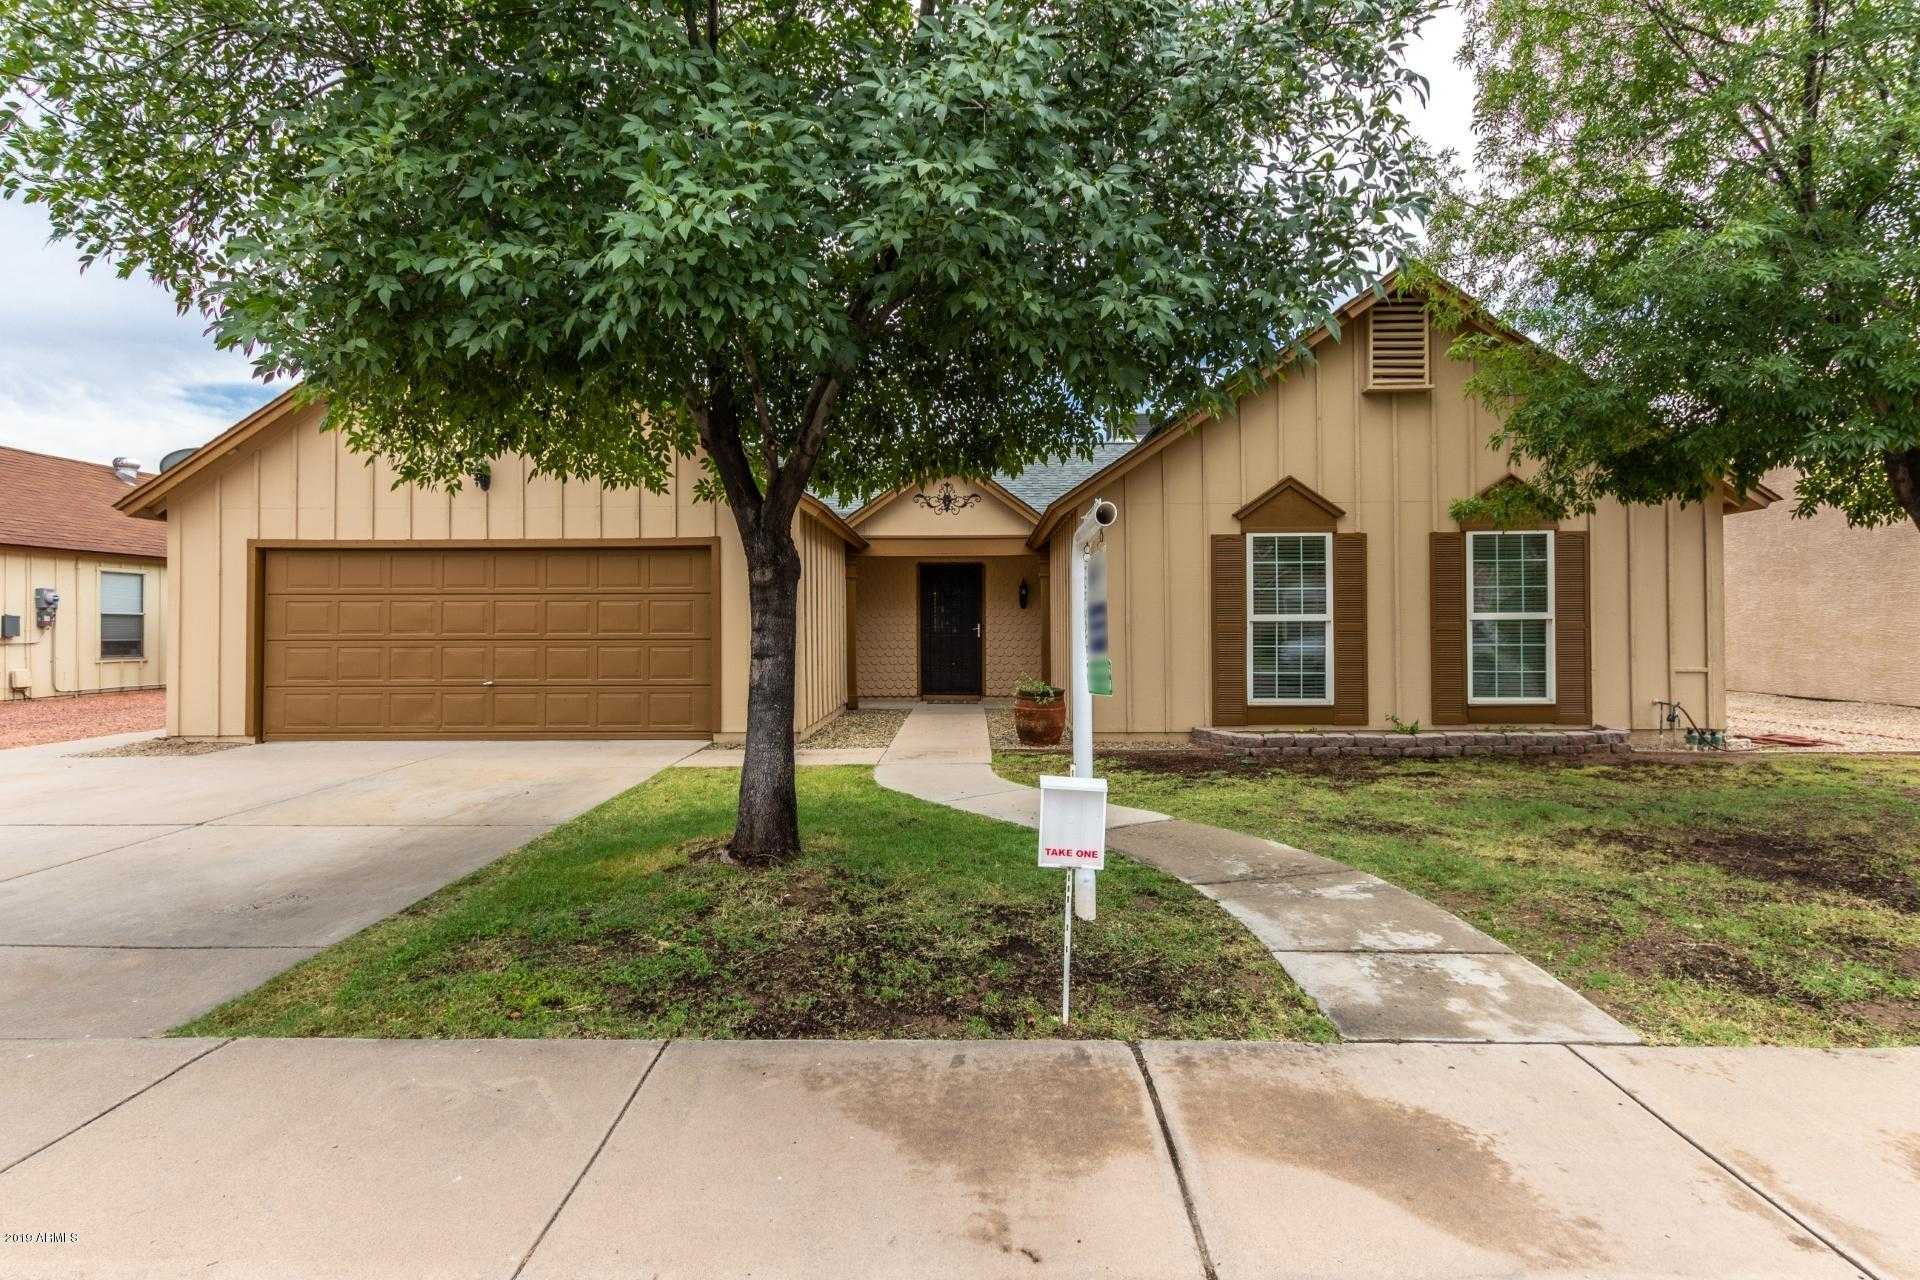 $315,000 - 4Br/2Ba - Home for Sale in Deerview Unit 28 Lot 2544-2829, Glendale